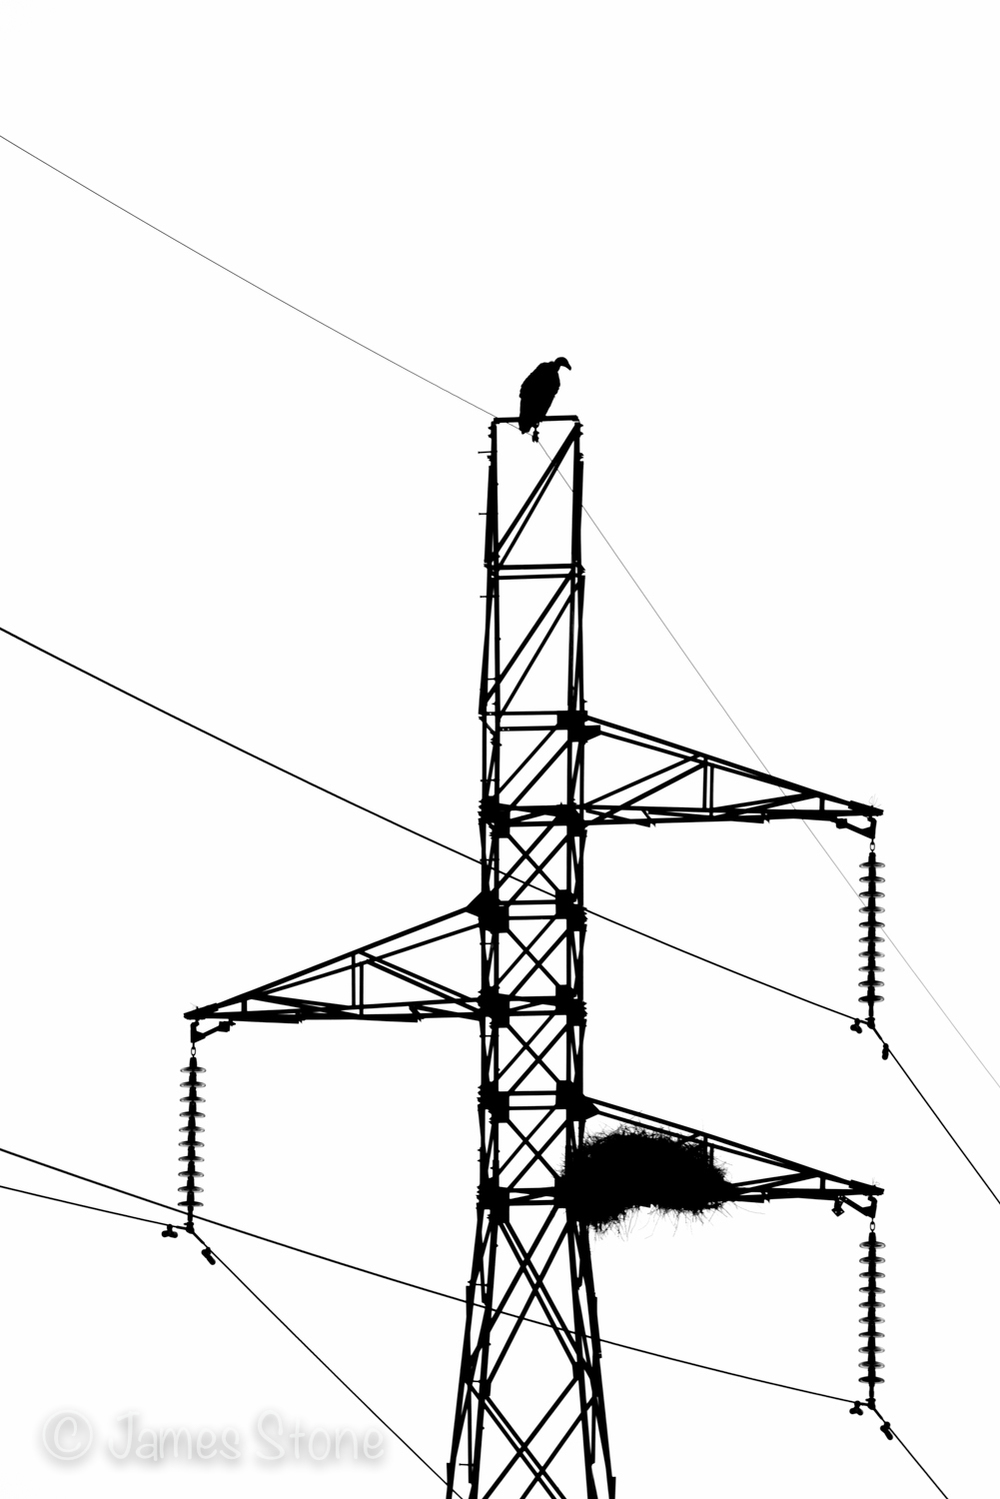 Perched on high electricity